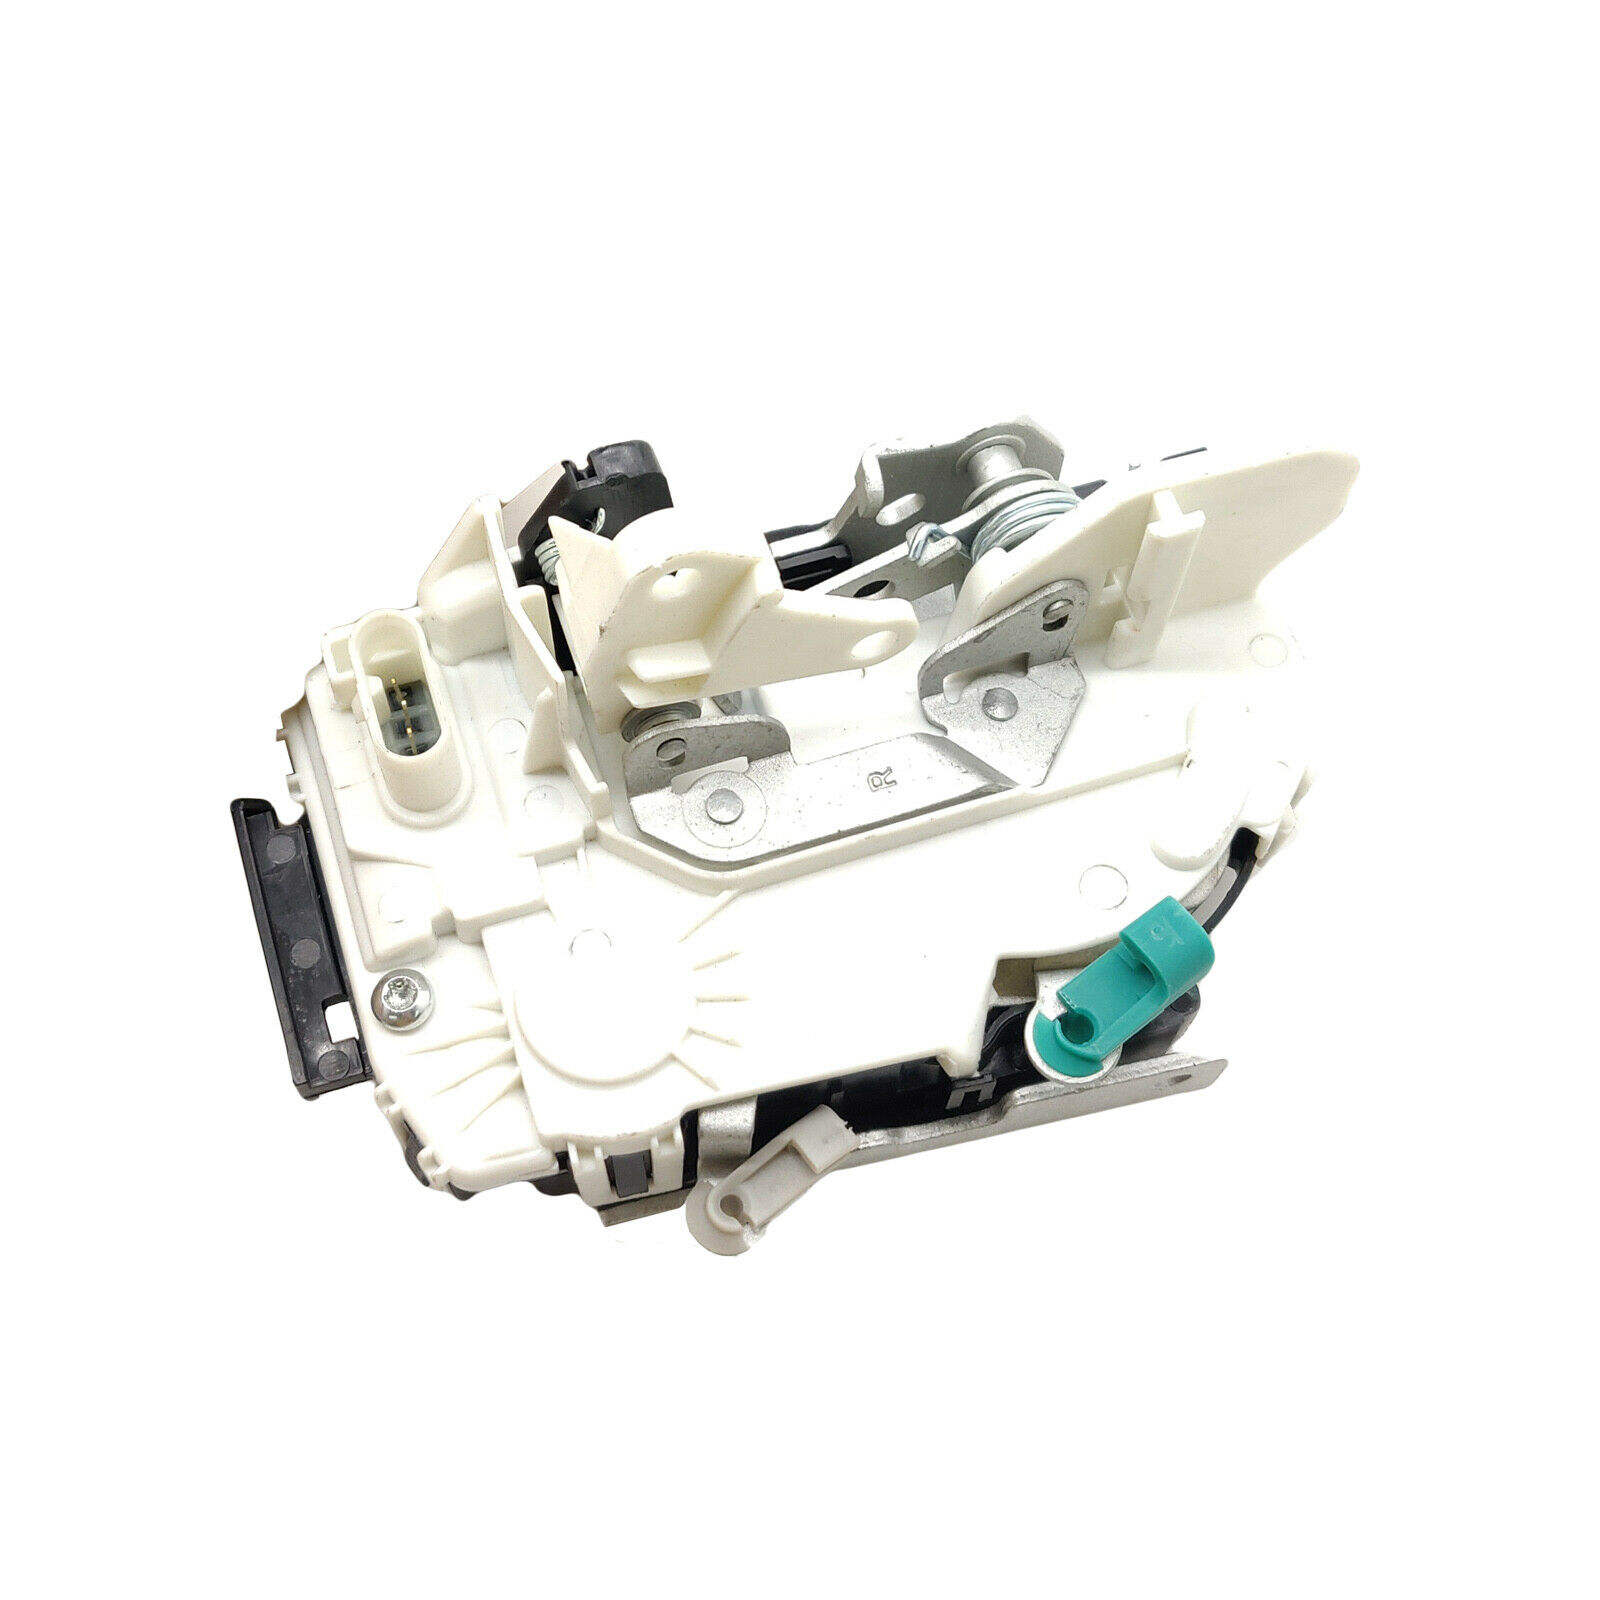 NEW Tailgate Latch Power Door Lock Actuator fits 07-18 Jeep-s Wrangler-s J-K 4589584AF, 4589584AD, 4589584AE